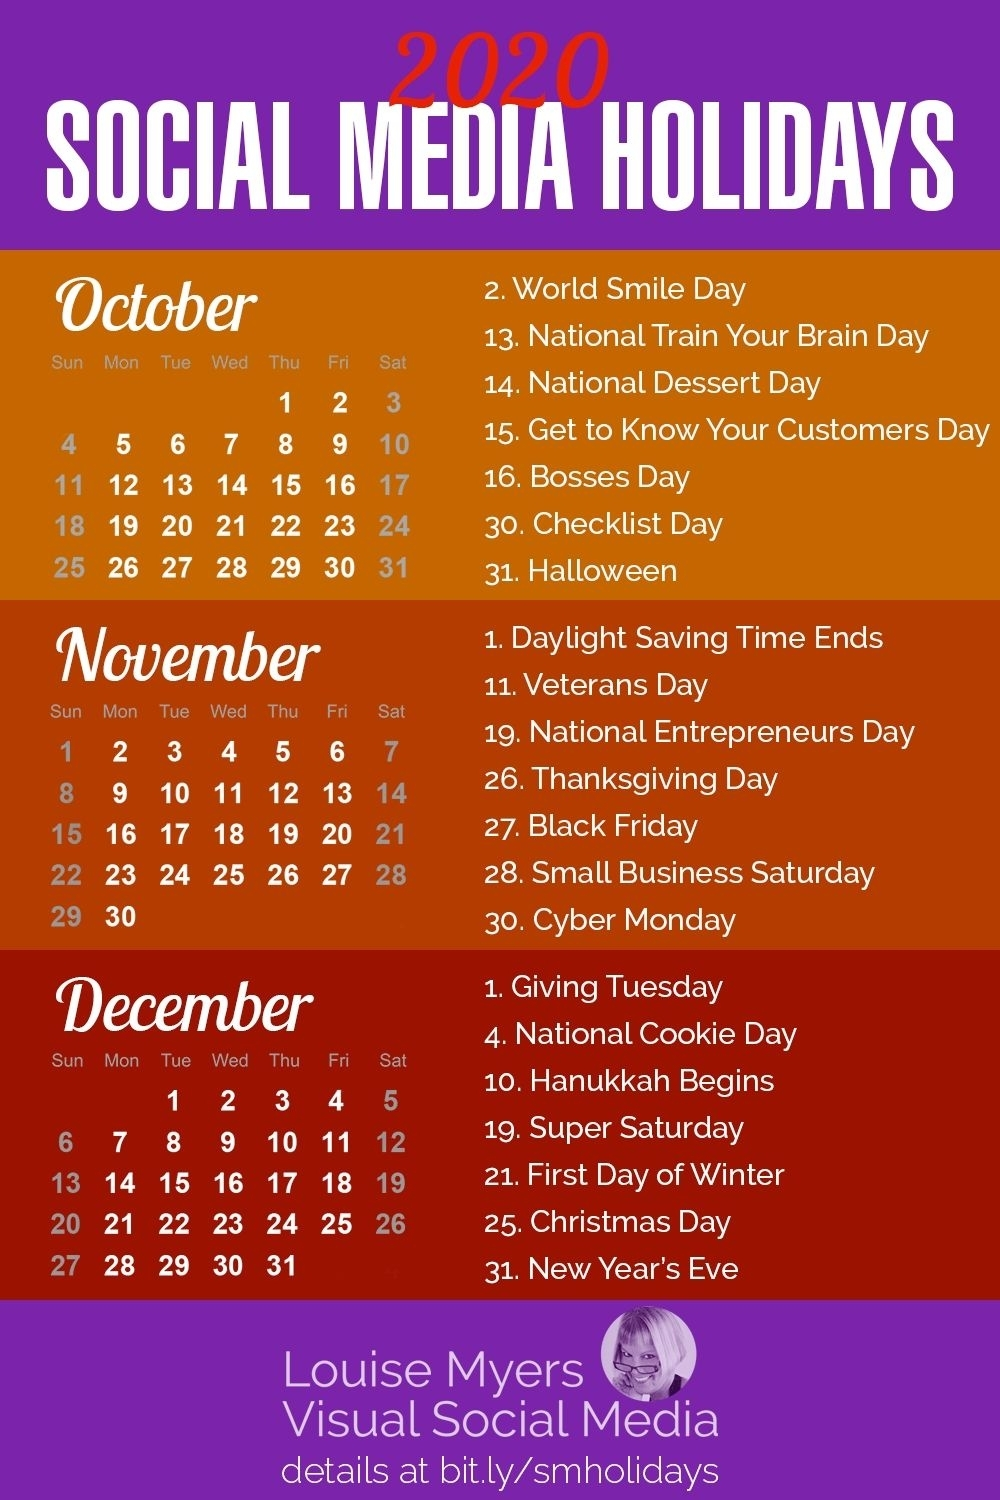 Calendar Of Special Days 2020 In 2020 | Marketing Strategy inside Special Days Of The Year 2020 Calendar